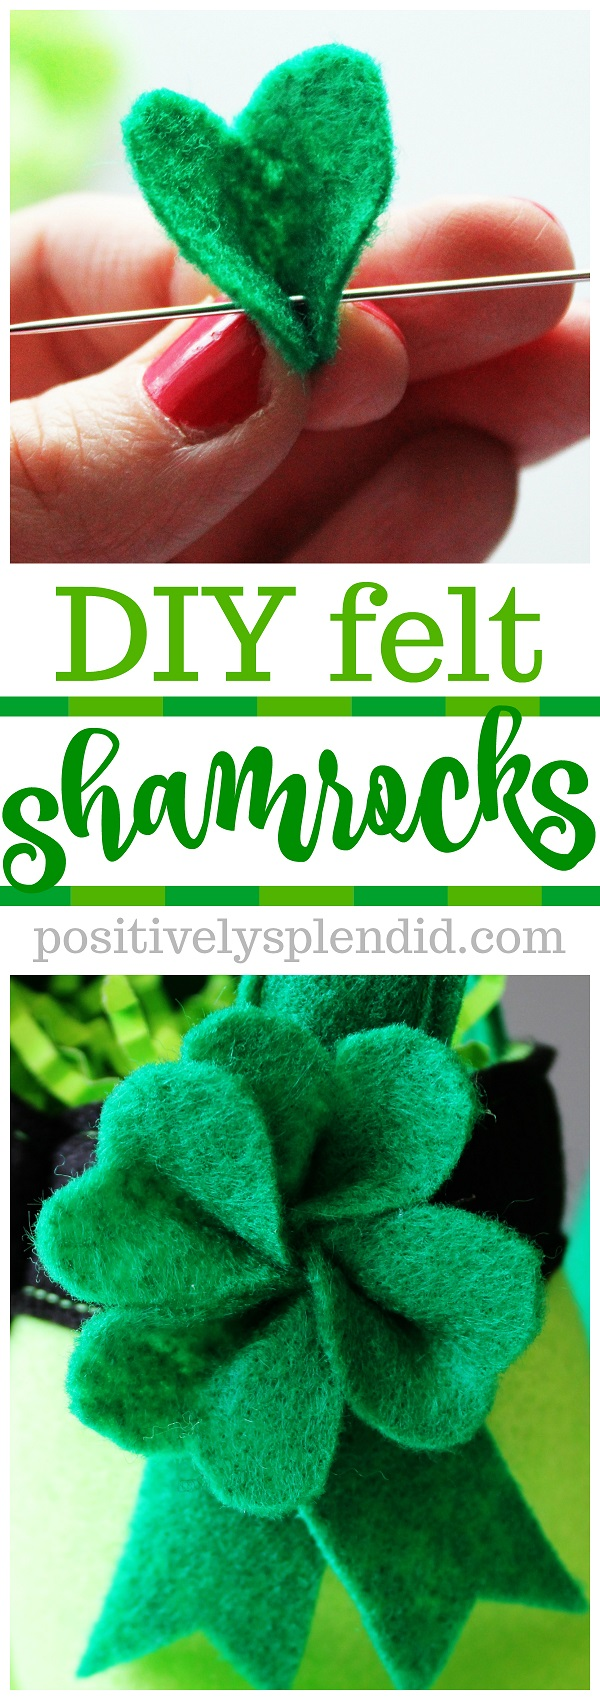 Tutorial: Felt St. Patrick's Day shamrocks